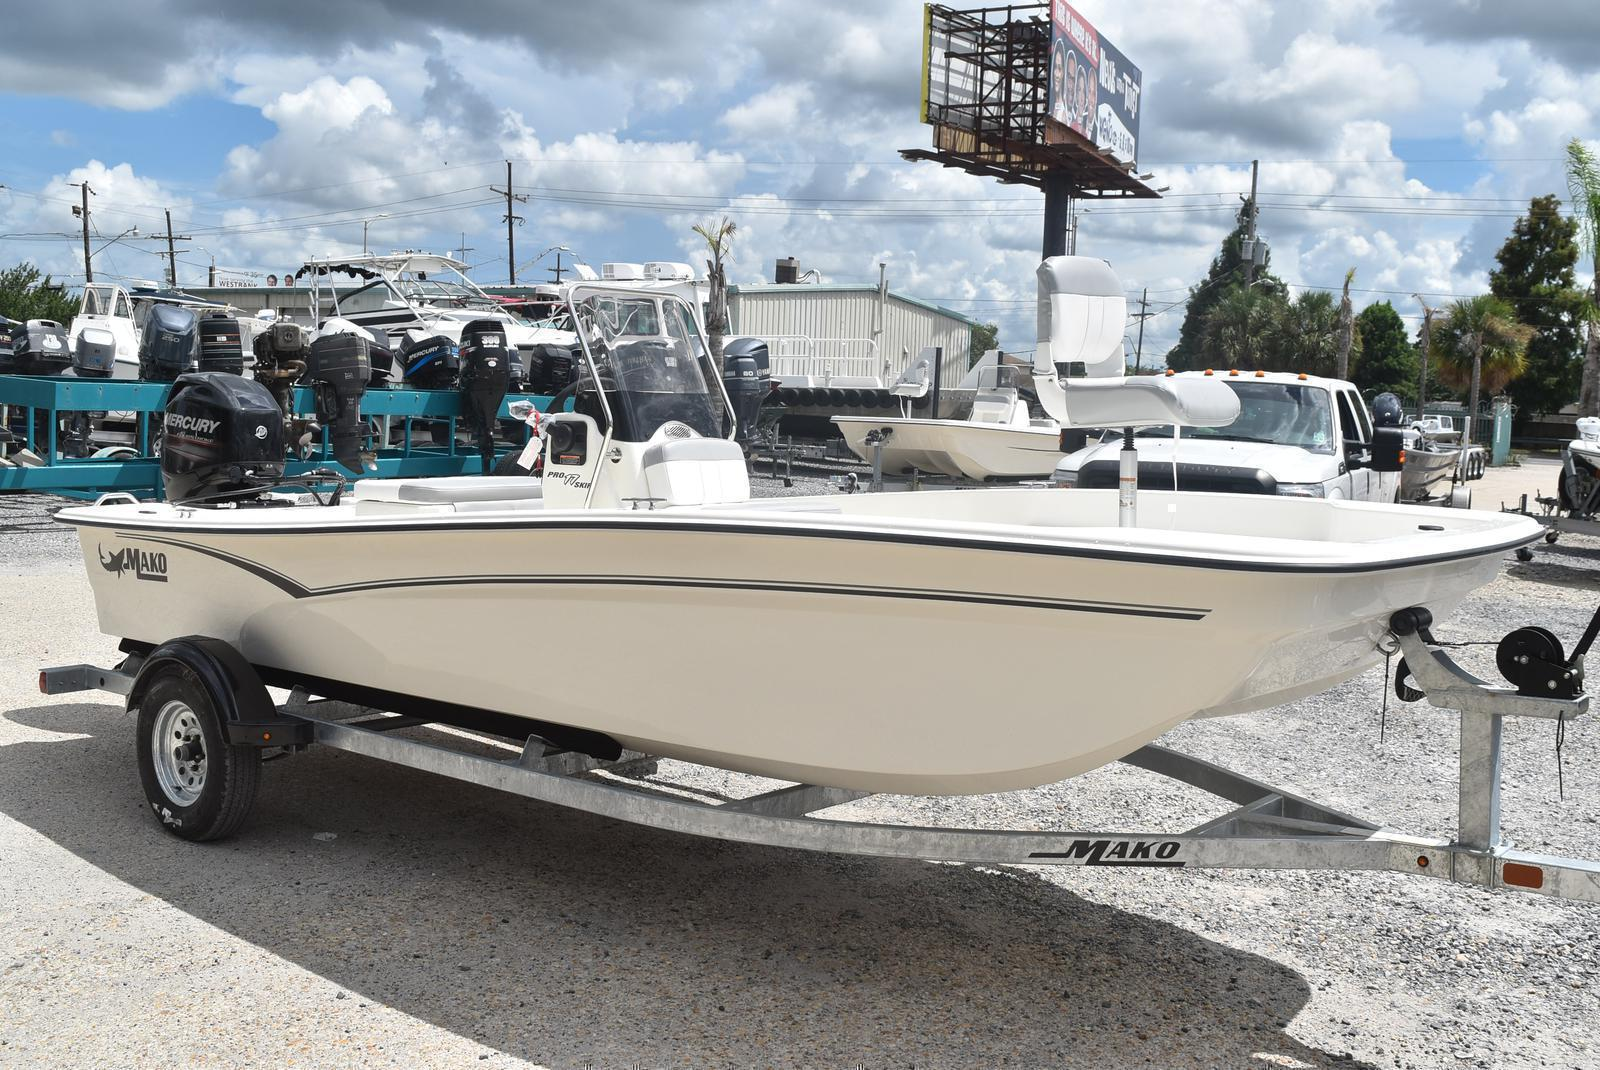 2020 Mako boat for sale, model of the boat is Pro Skiff 17, 75 ELPT & Image # 663 of 702